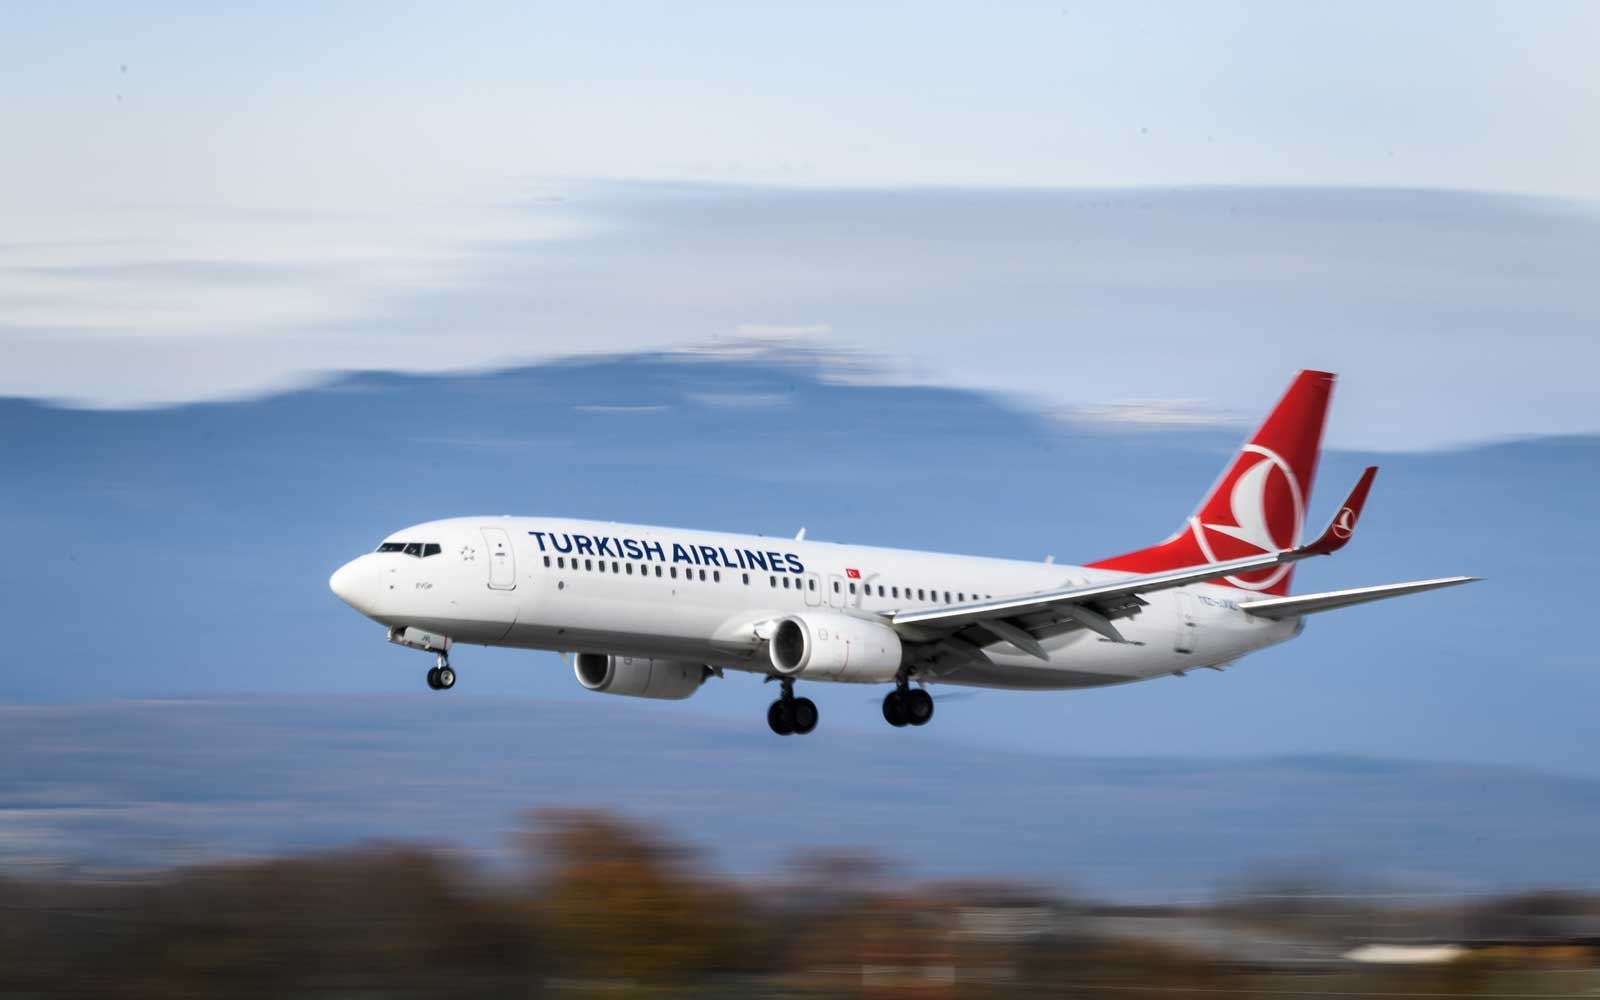 Turkish Airlines plane landing